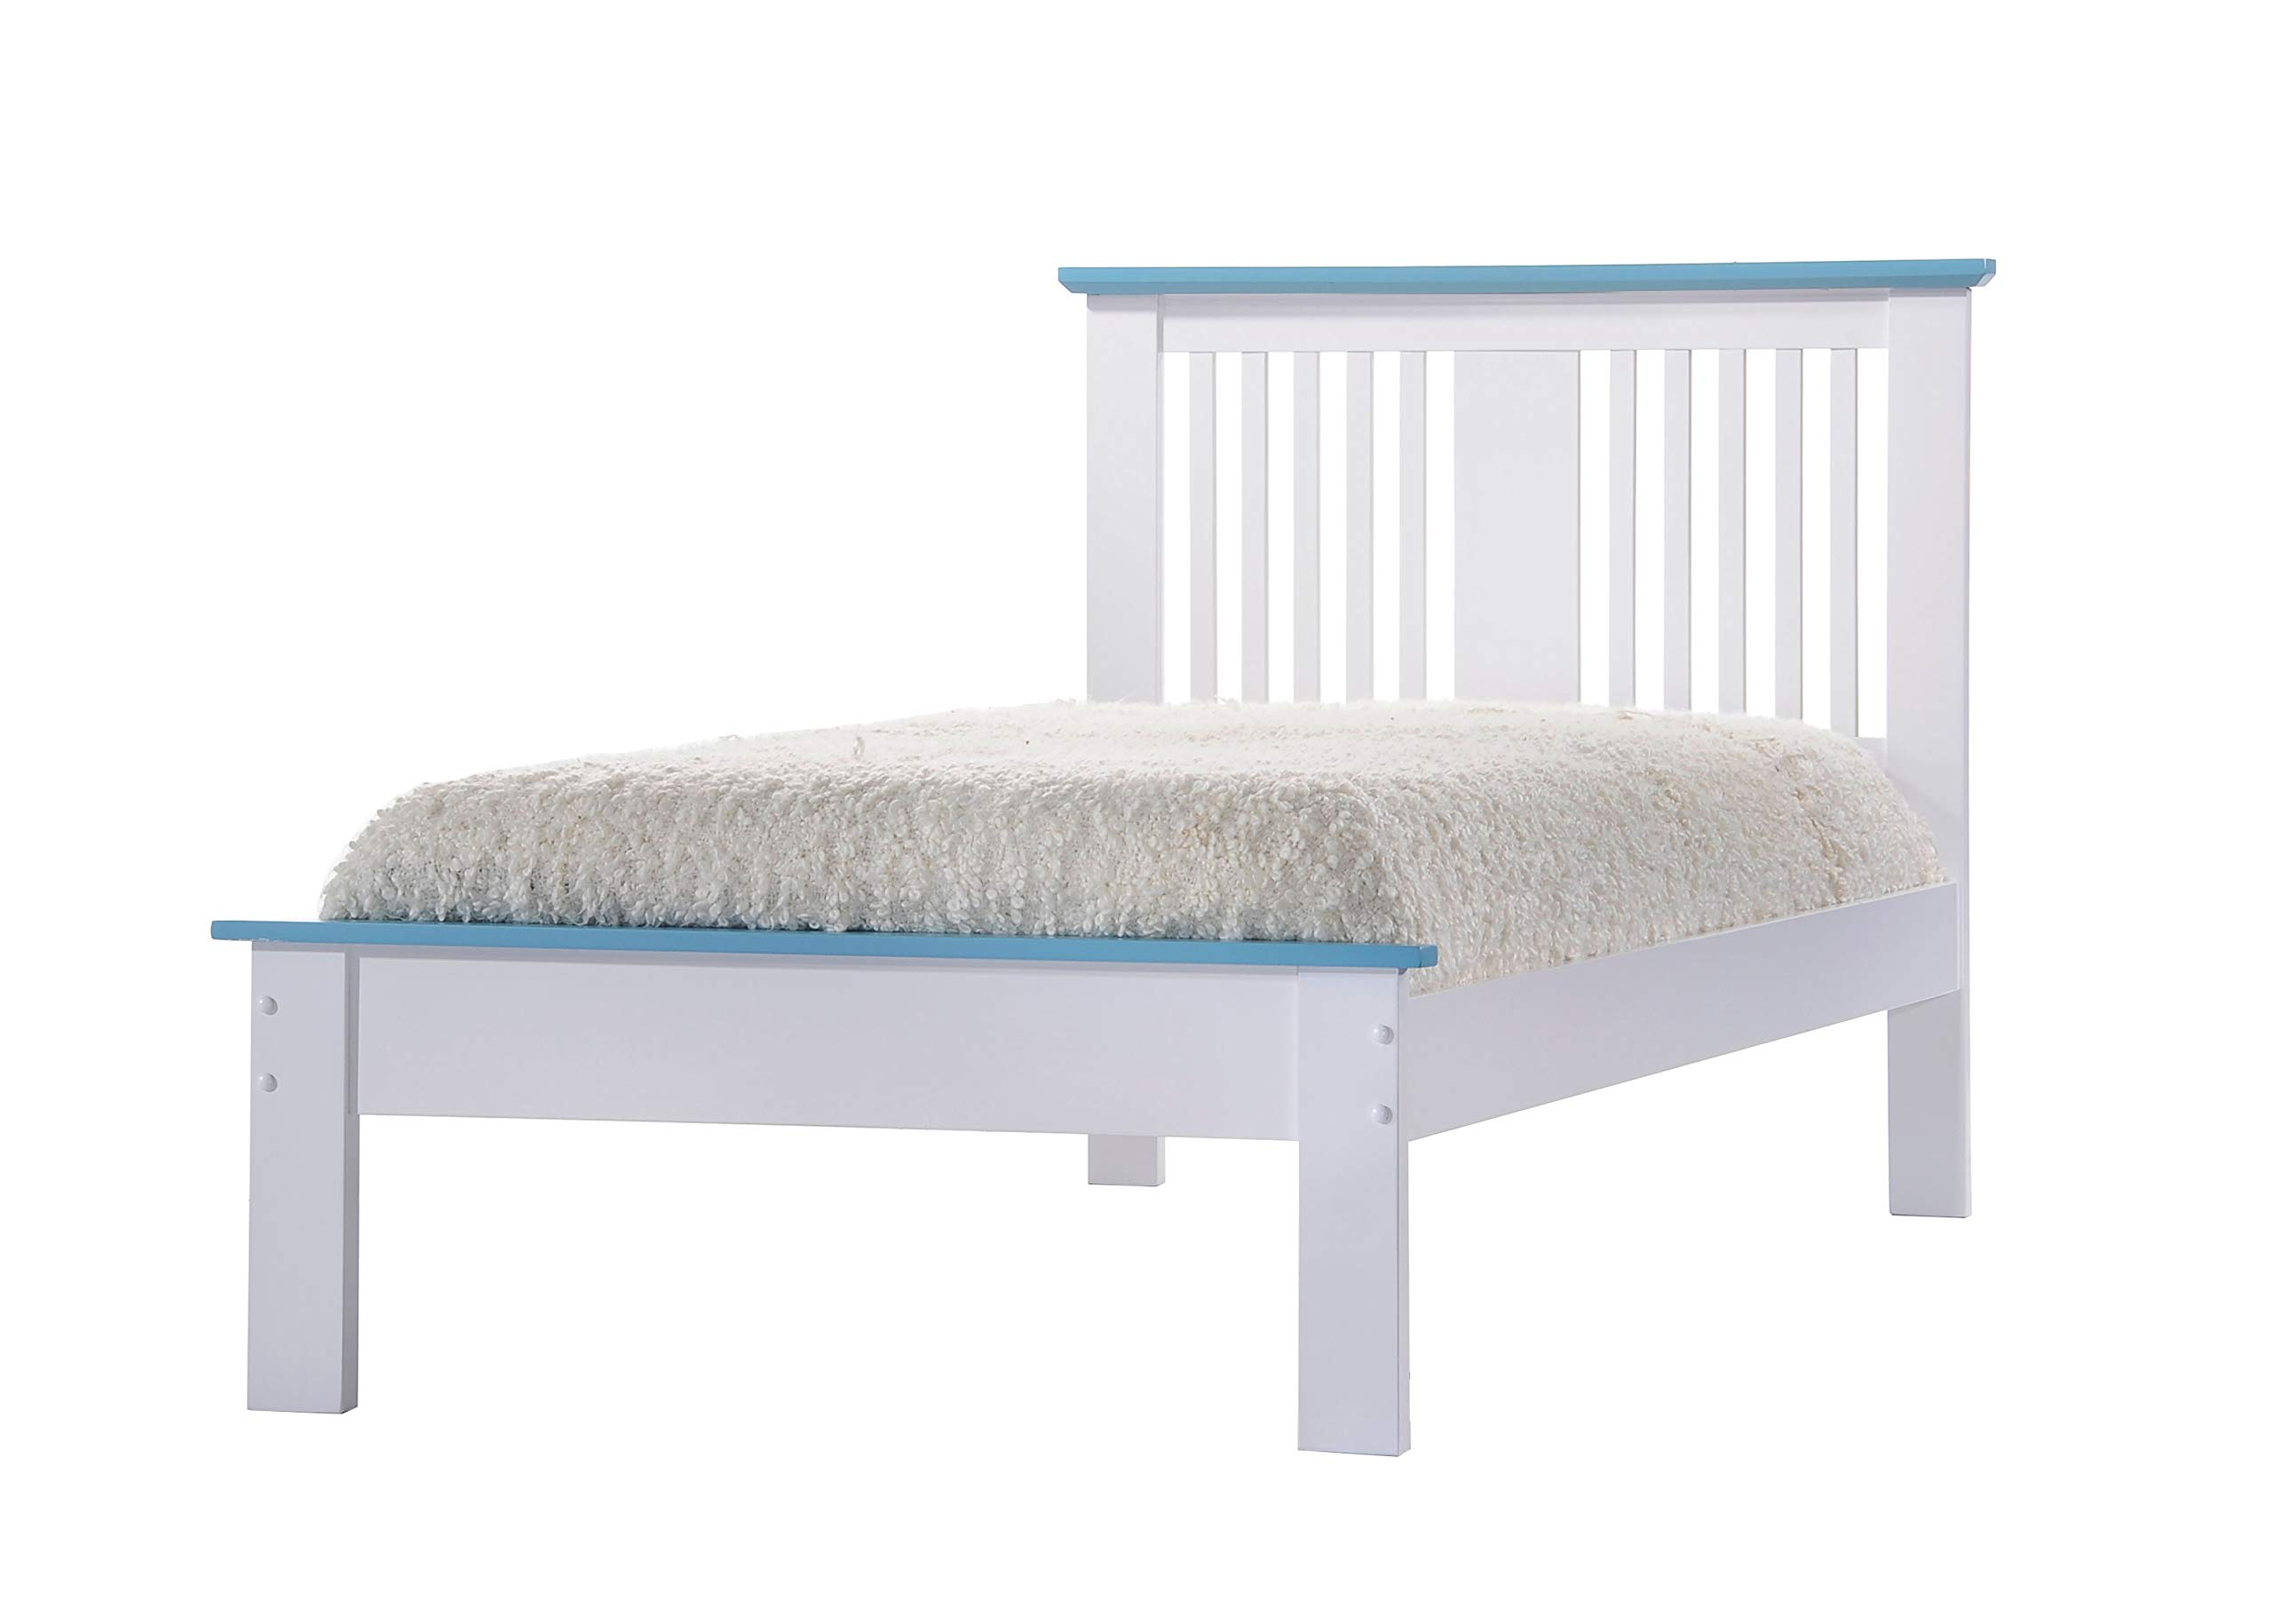 Acme Furniture 25466T-R Brooklet Bed with Rail (Set of 2), Twin, White & Blue